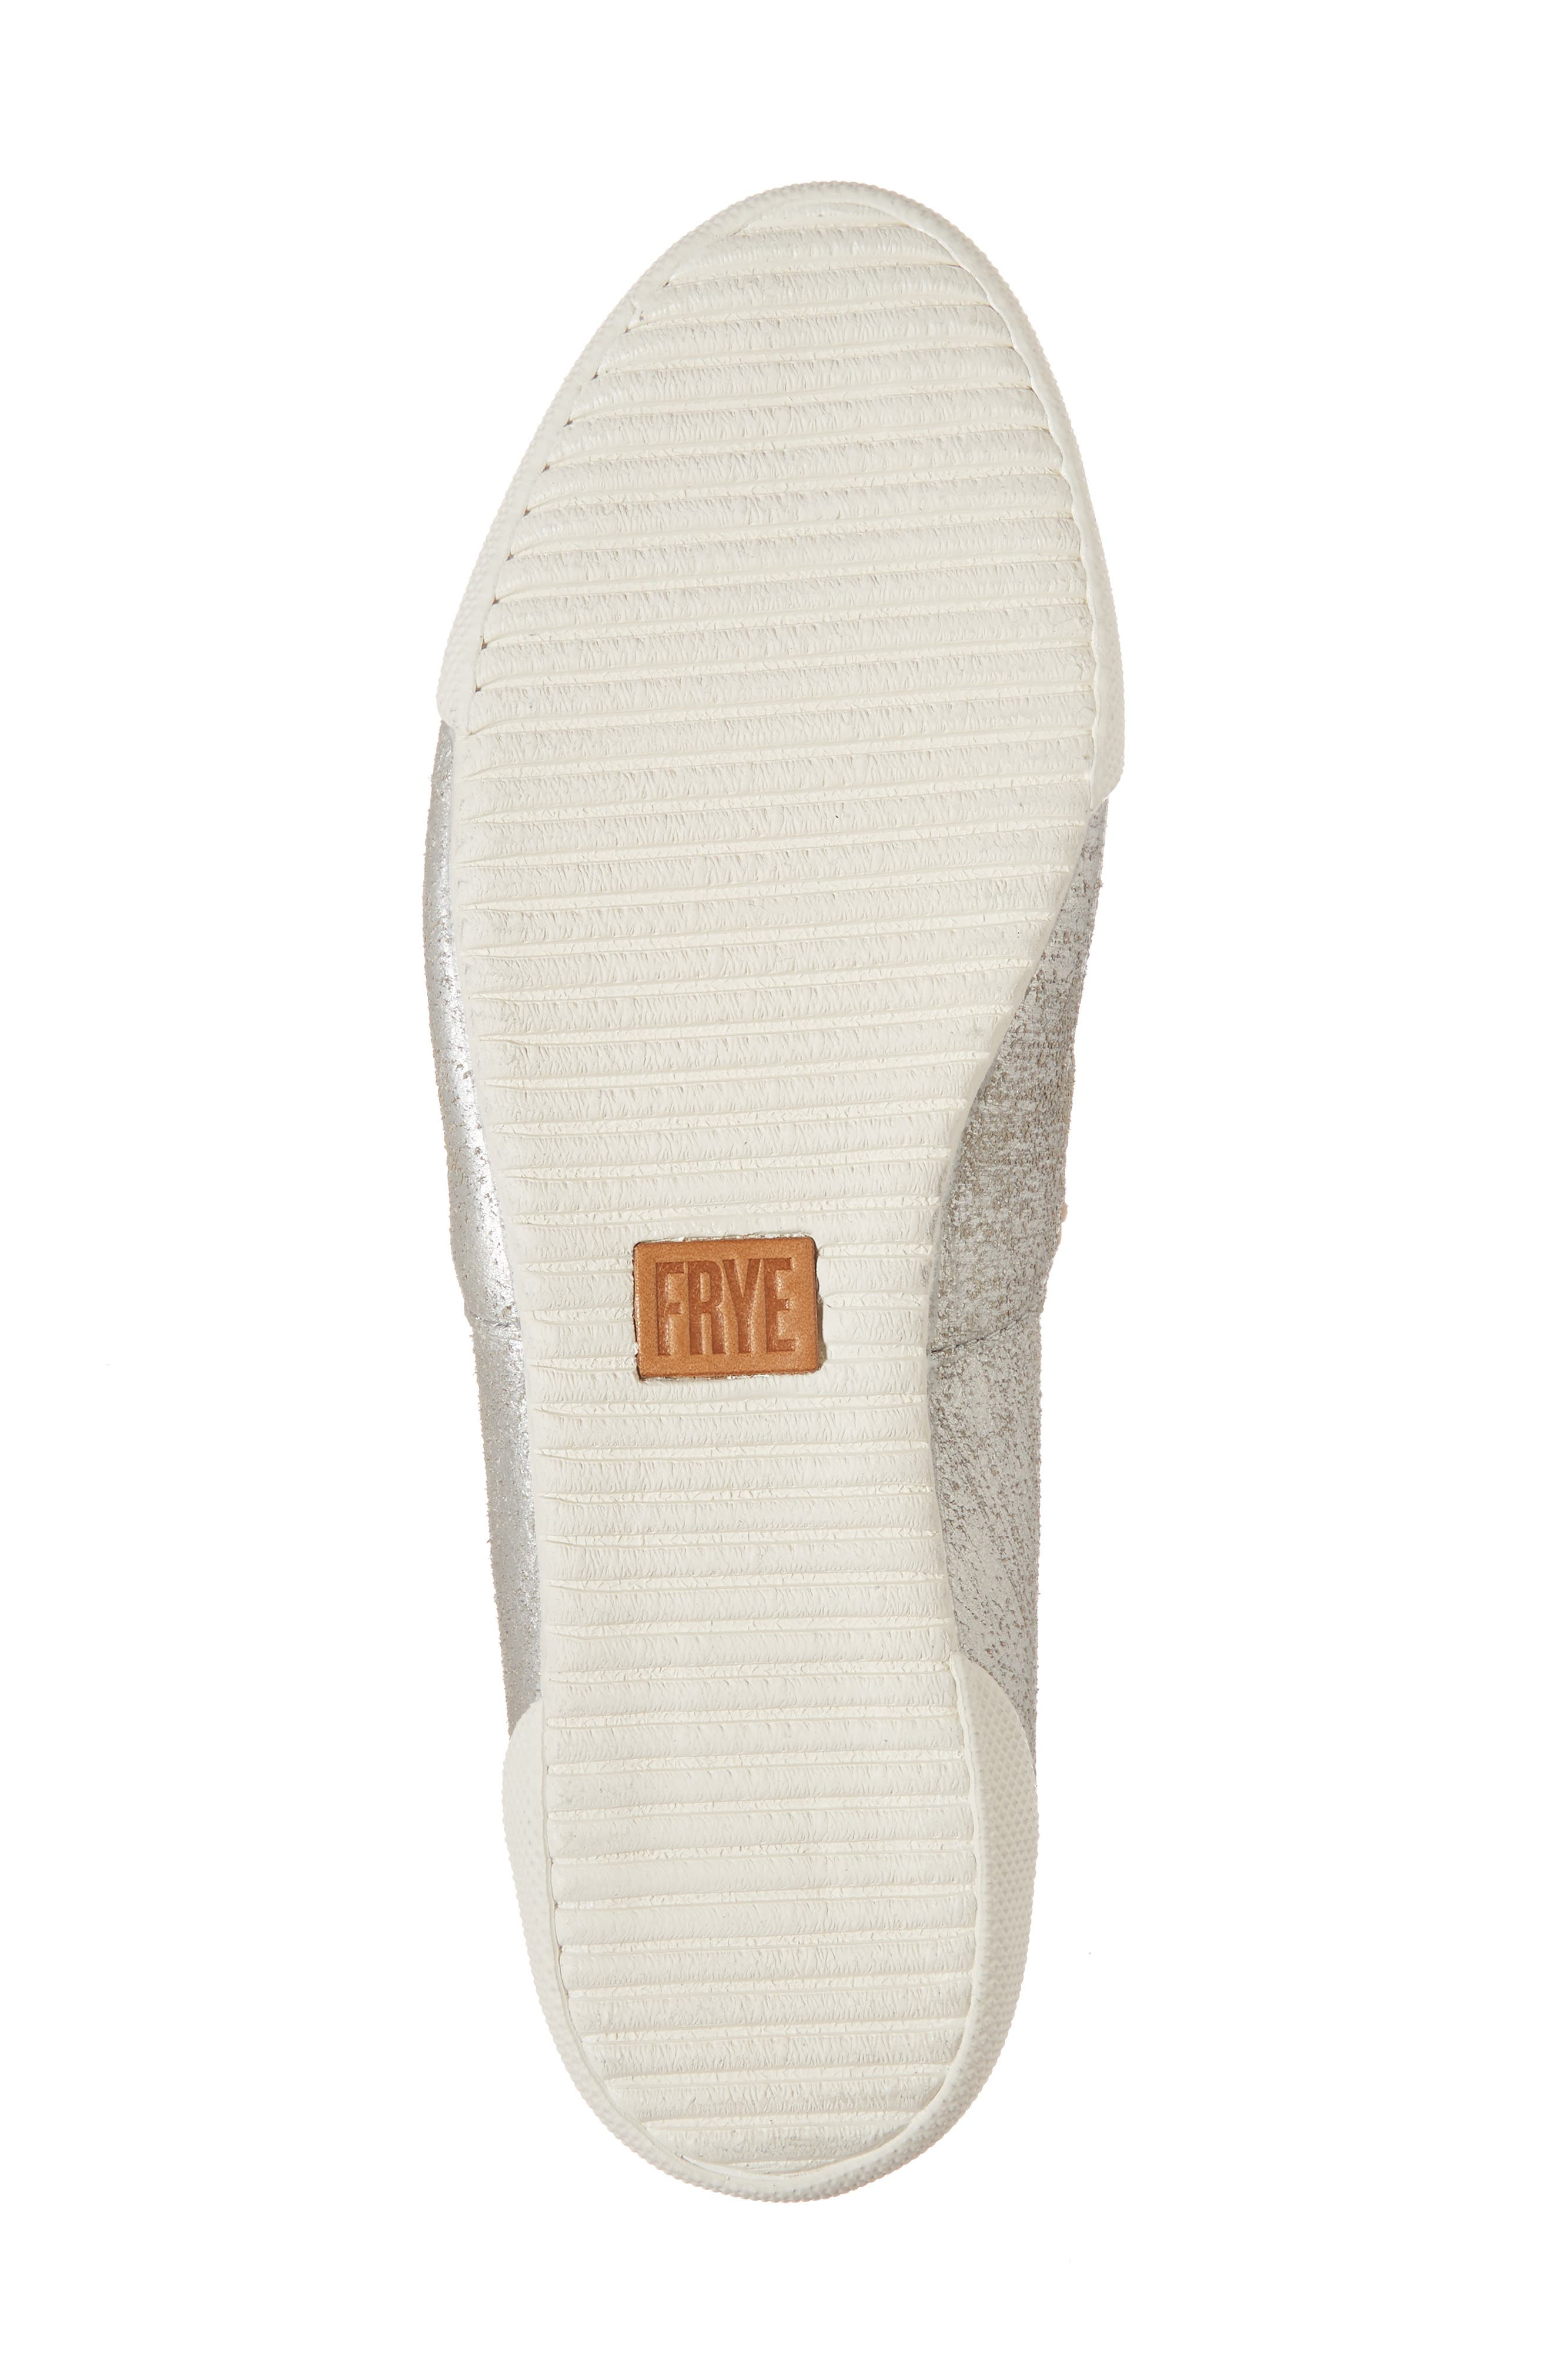 FRYE, 'Melanie' Slip-On, Alternate thumbnail 6, color, SILVER